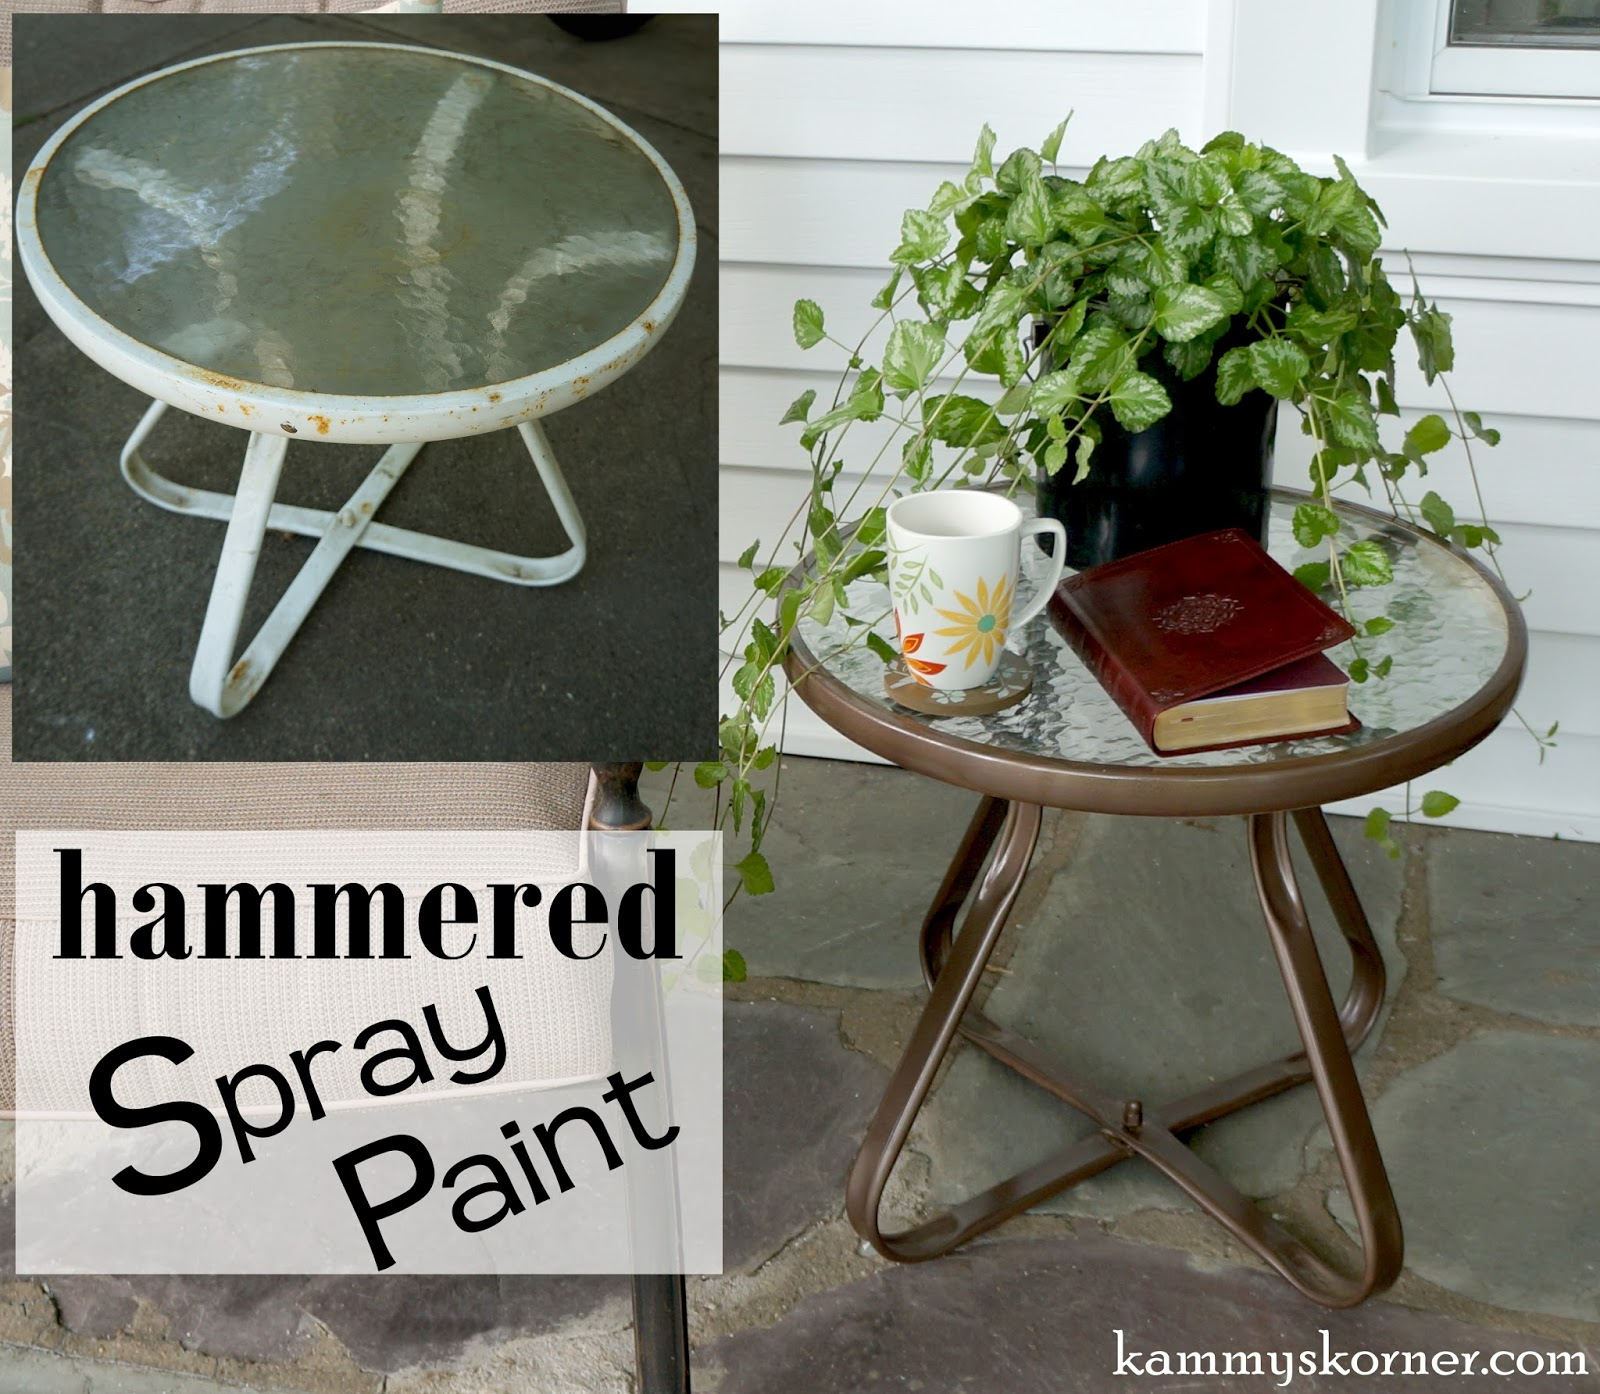 Rustoleum Paint Job >> Kammy's Korner: Updating A Little Outdoor End Table The Easy Way